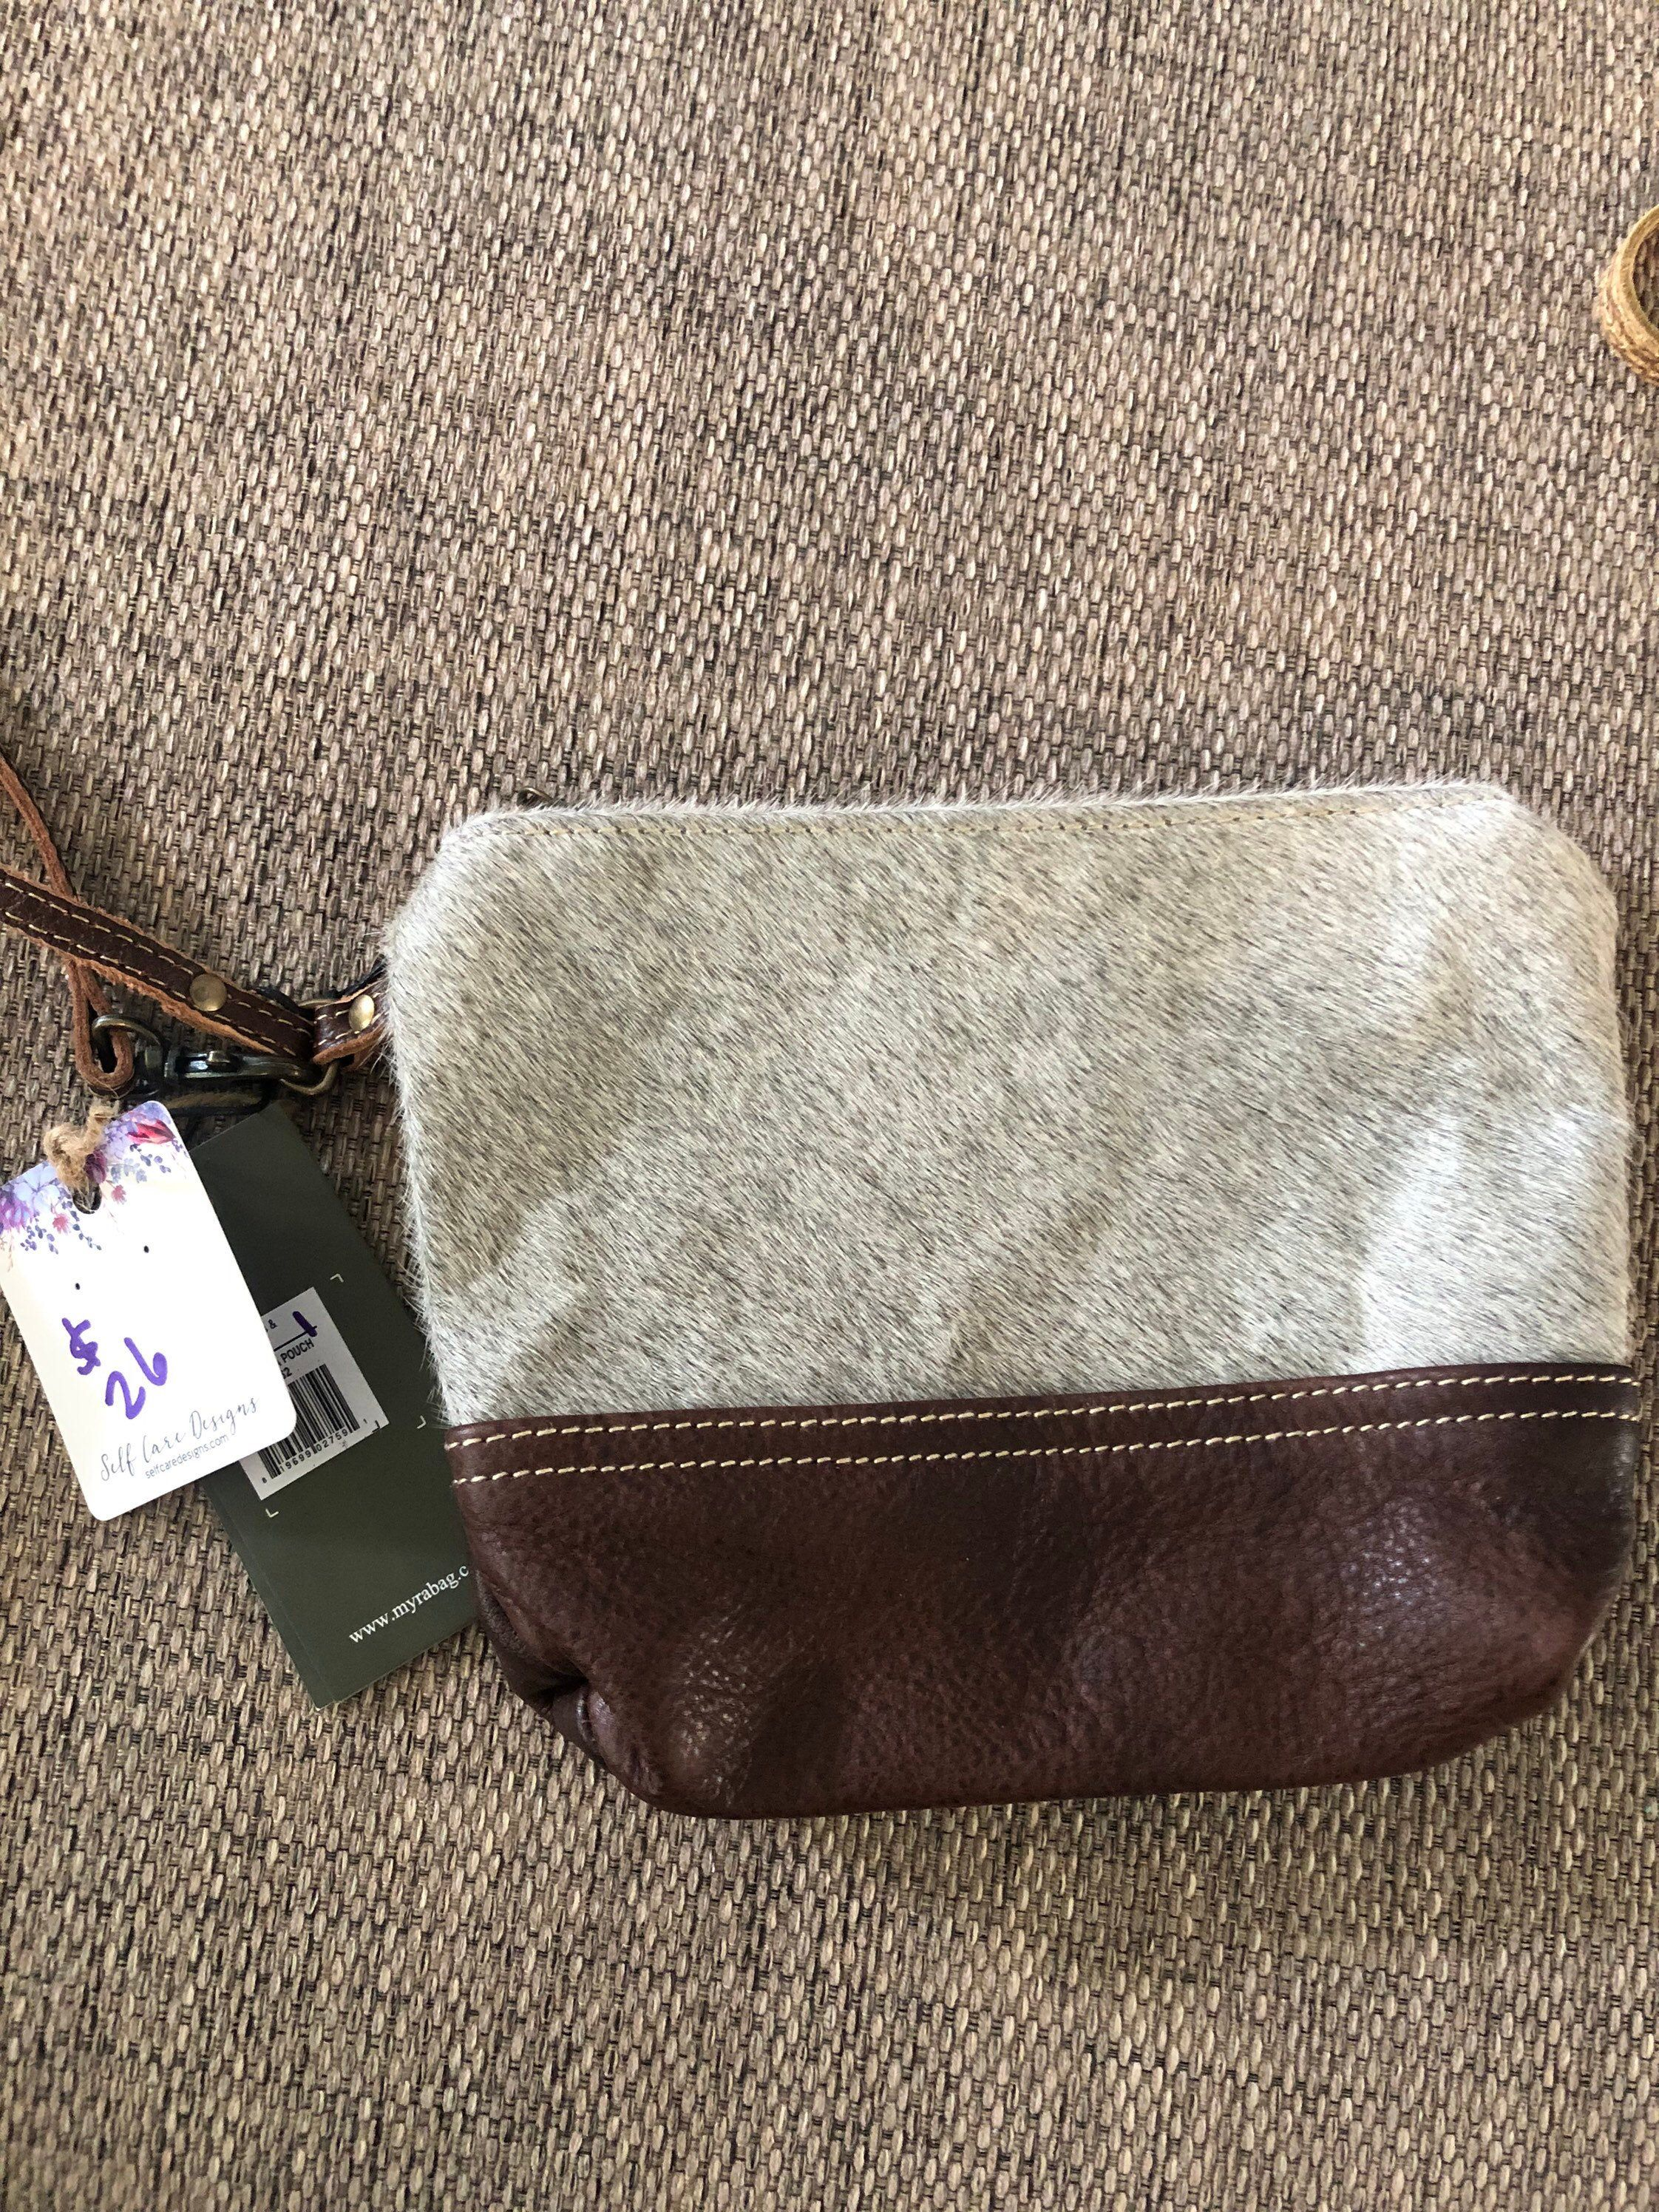 Excited To Share This Item From My Etsy Shop Hair On Leather Wristlet Myra Bag Hair On Pouch Hair On Cowhide Leather Wri In 2020 Cowhide Bag Bags Leather Wristlet And never works on holidays. pinterest